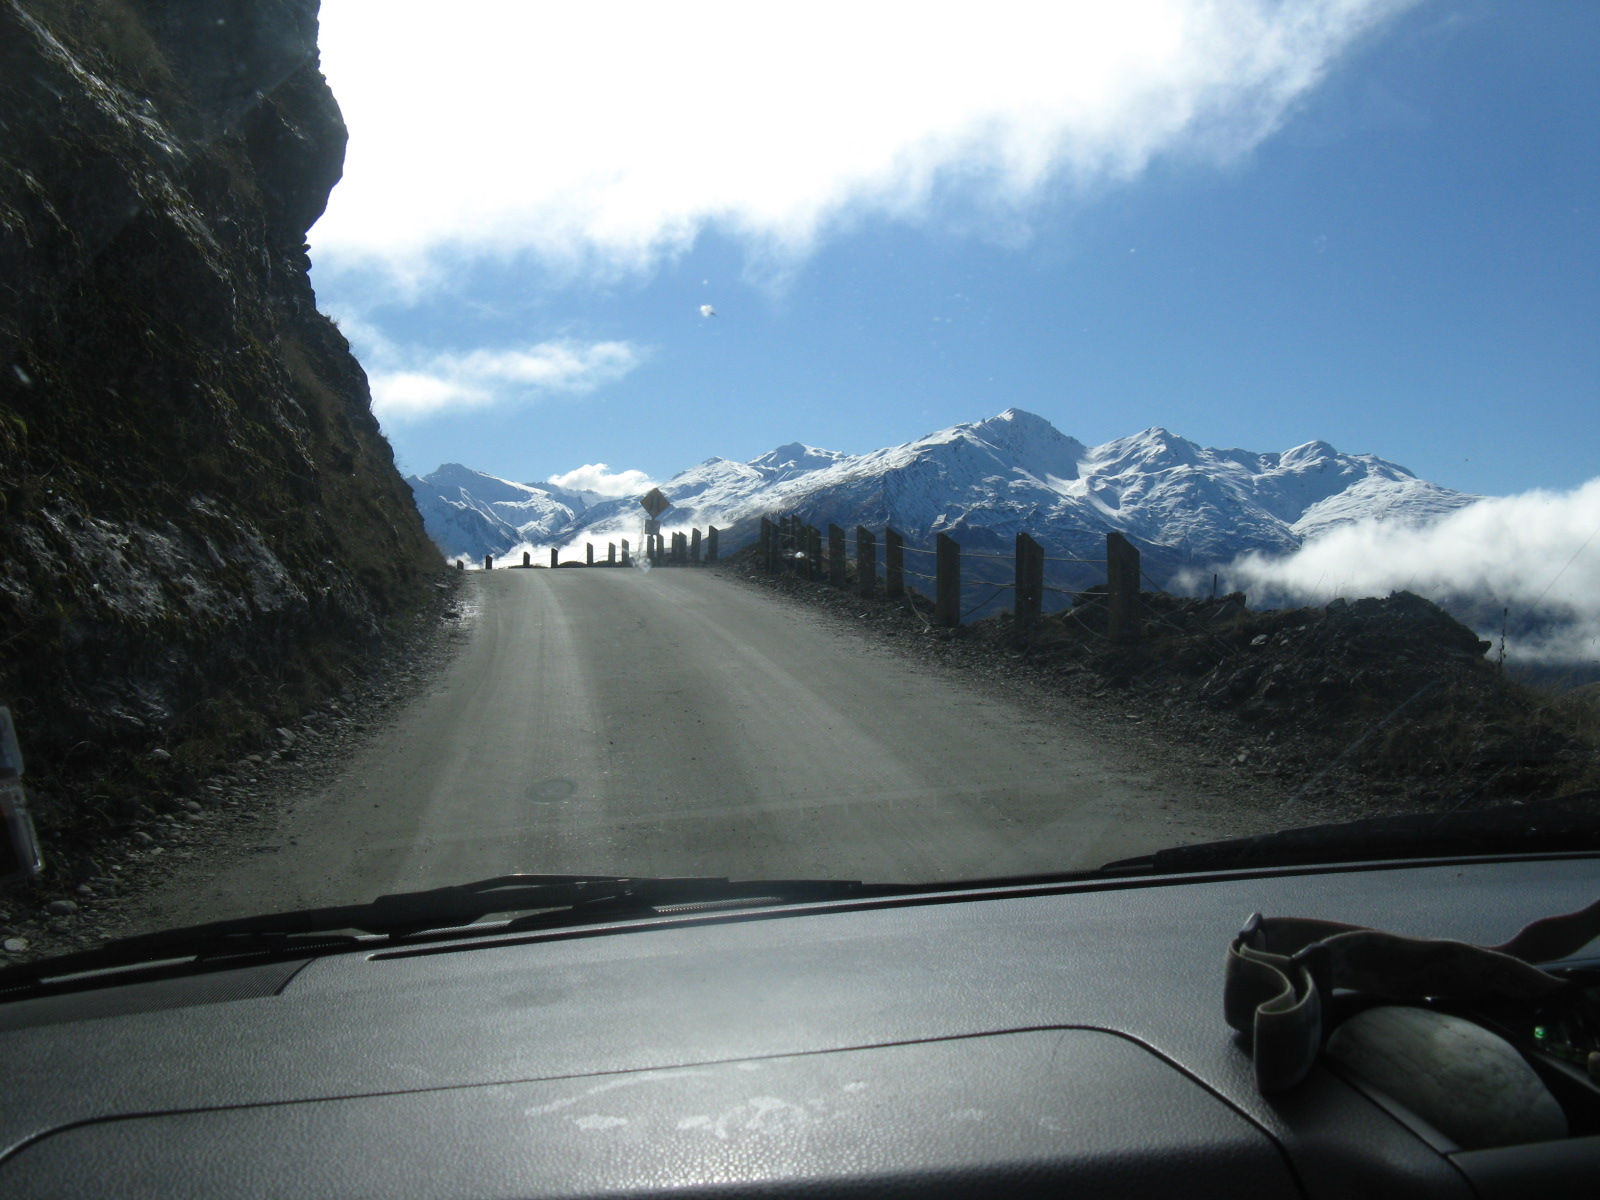 Access Road in New Zealand